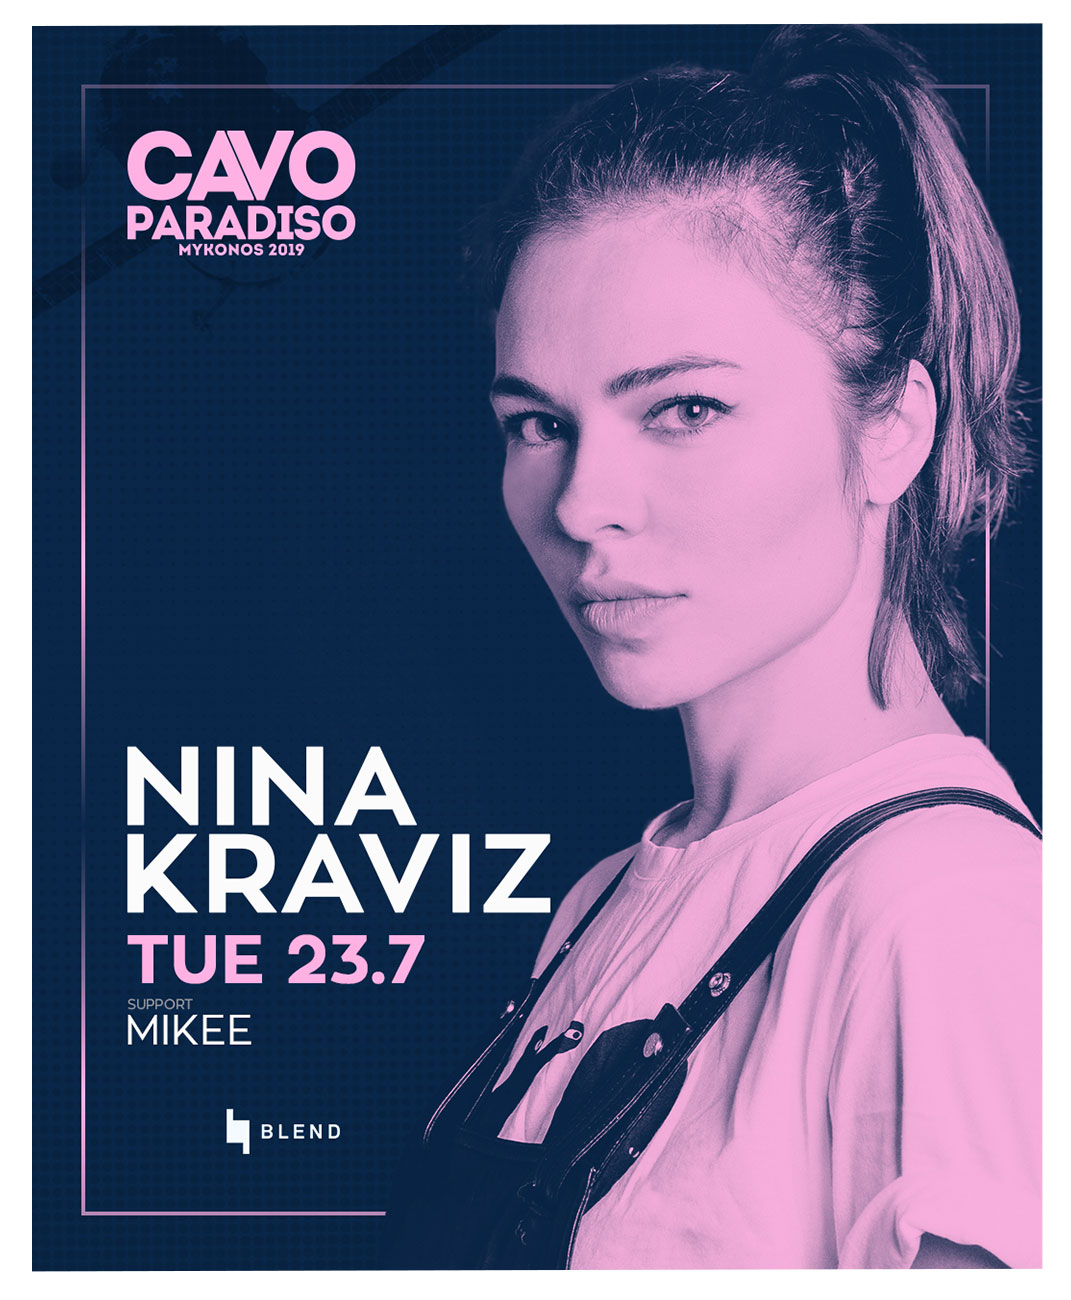 Nina Kraviz w/ support by Mikee